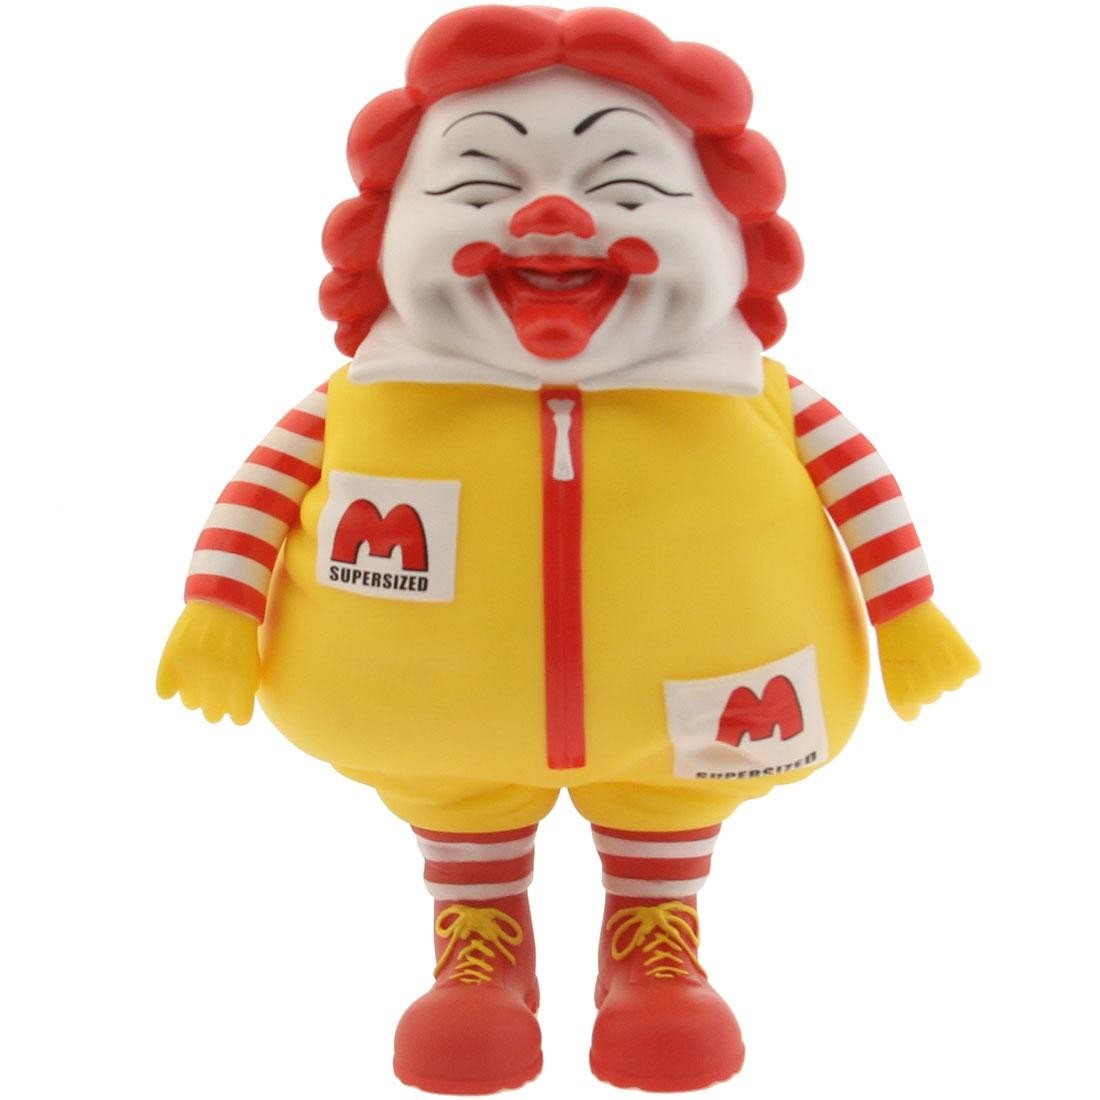 MINDstyle Collectormates McSupersized Figure by Ron English Popaganda - SDCC (red / yellow)